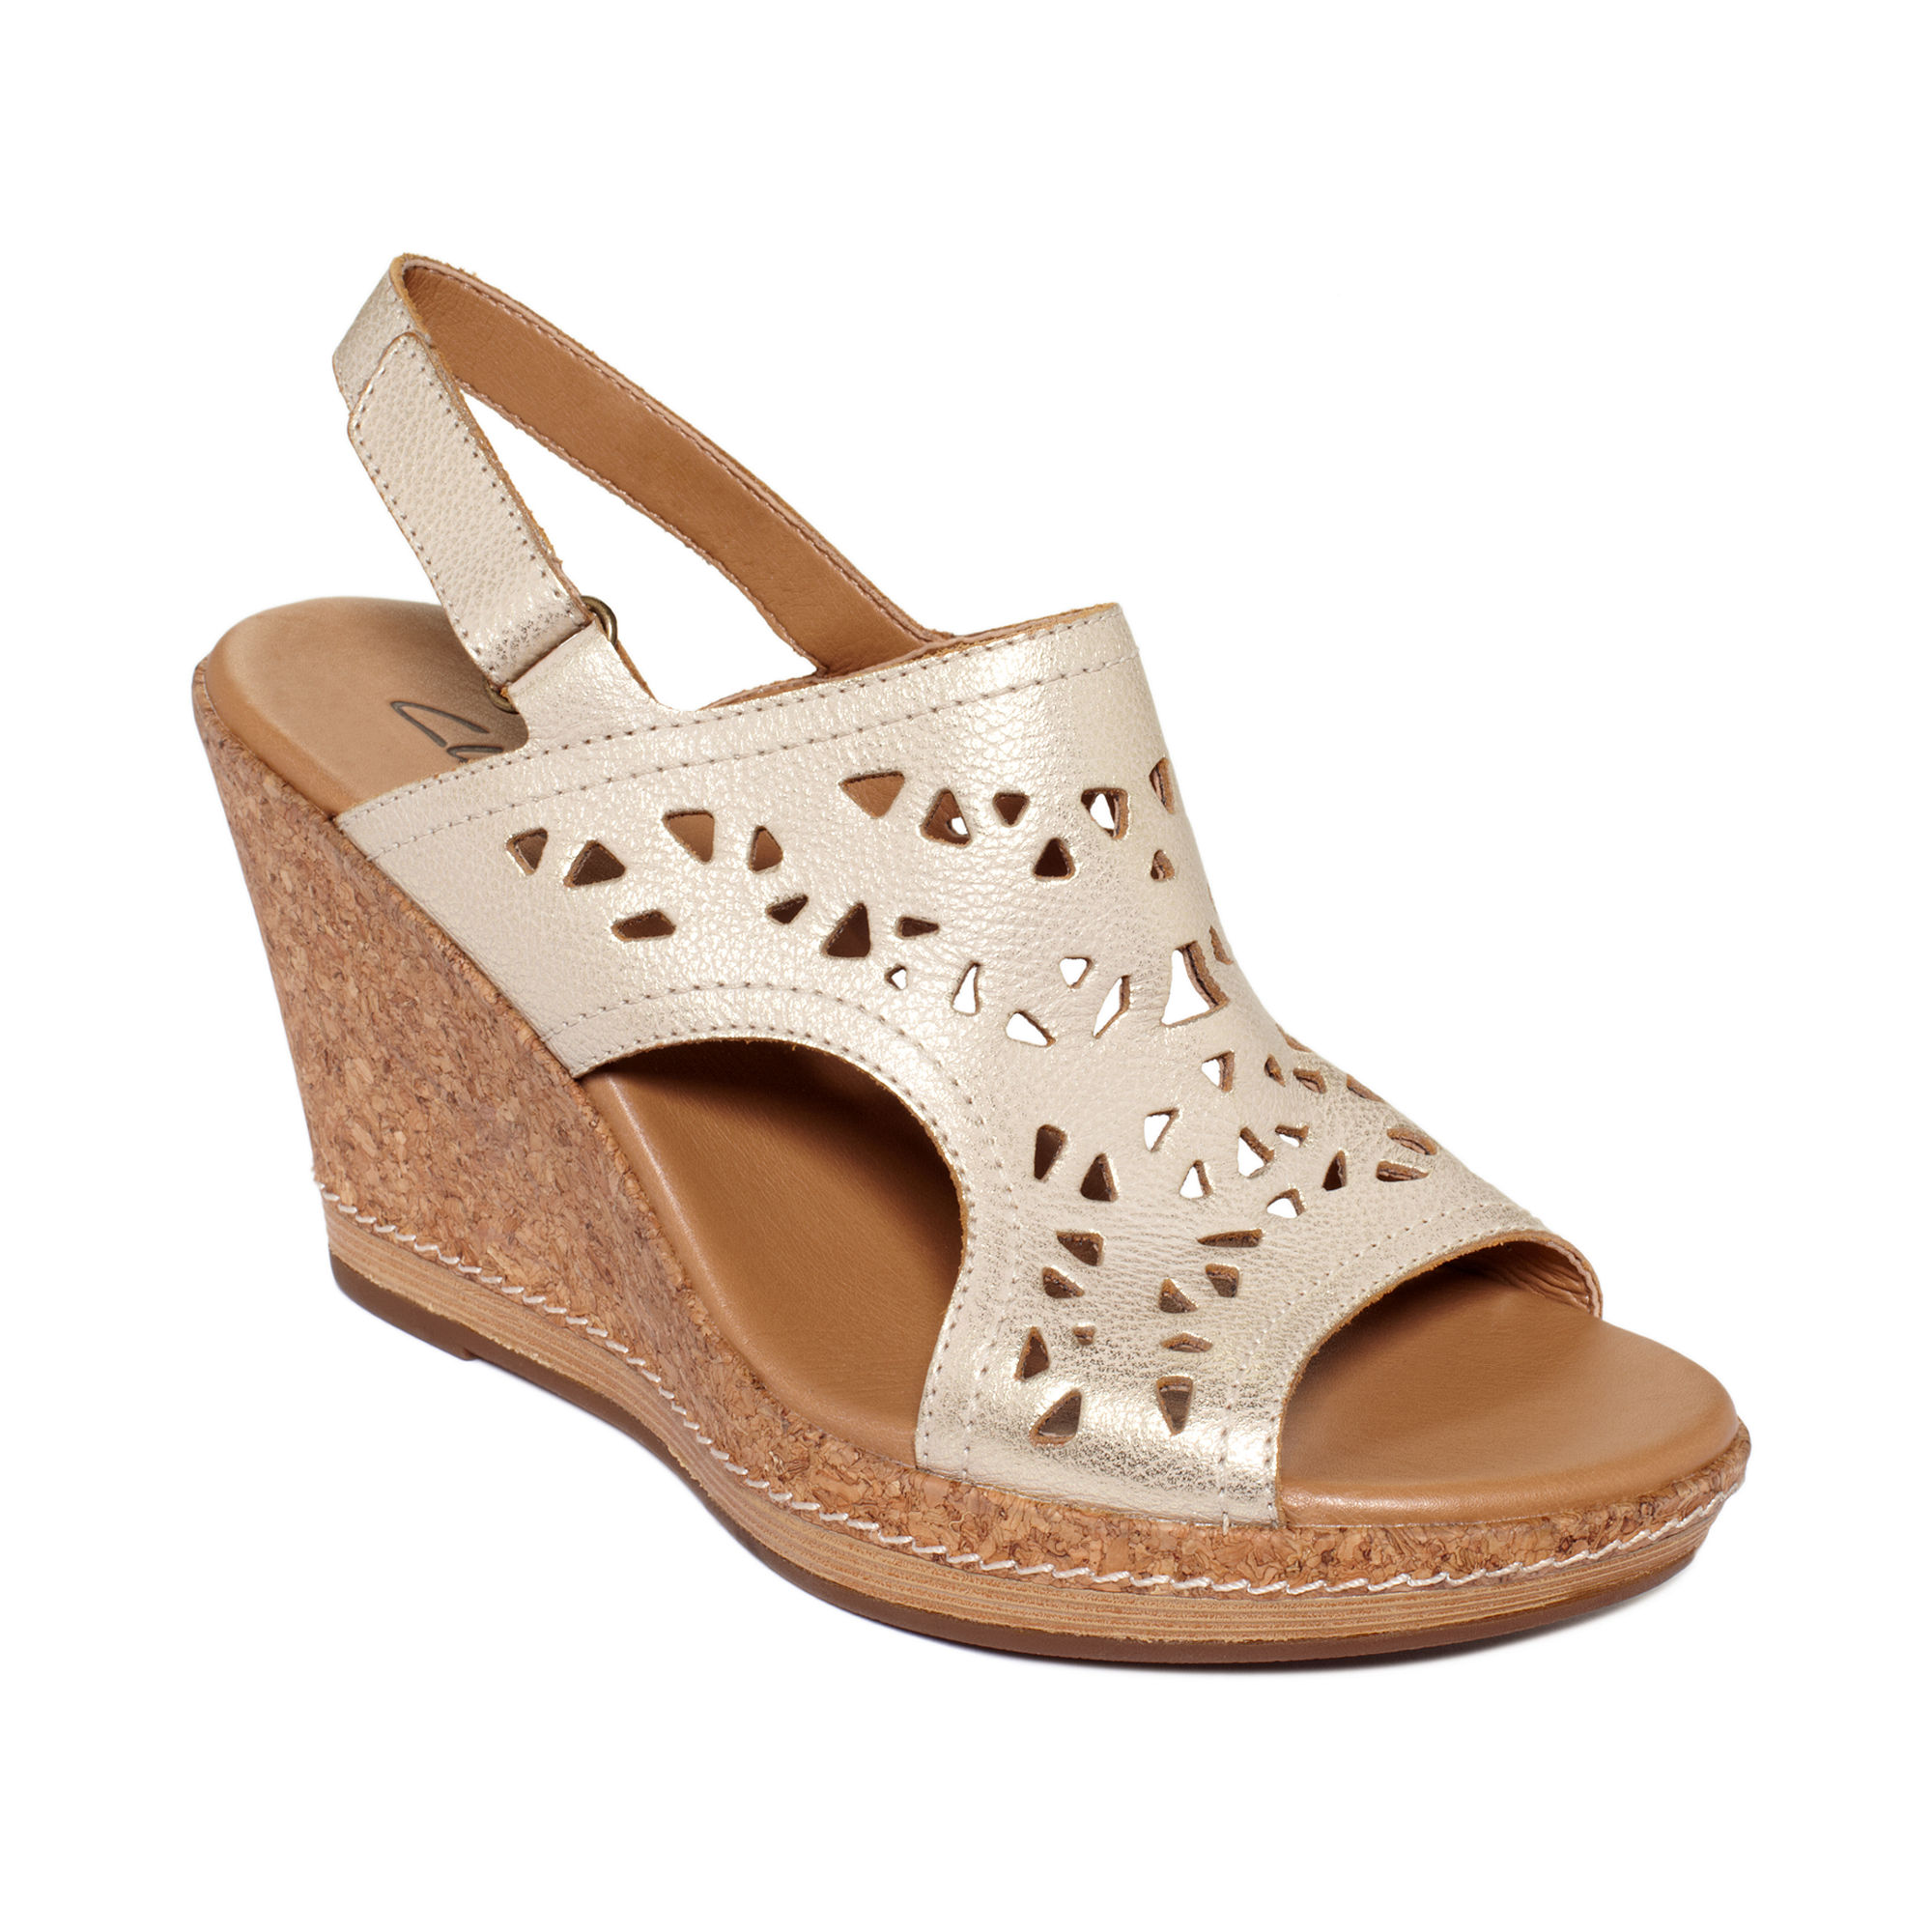 8b7dadd0f60 Clarks Pitch Mint Platform Wedge Sandals in Beige (Gold)